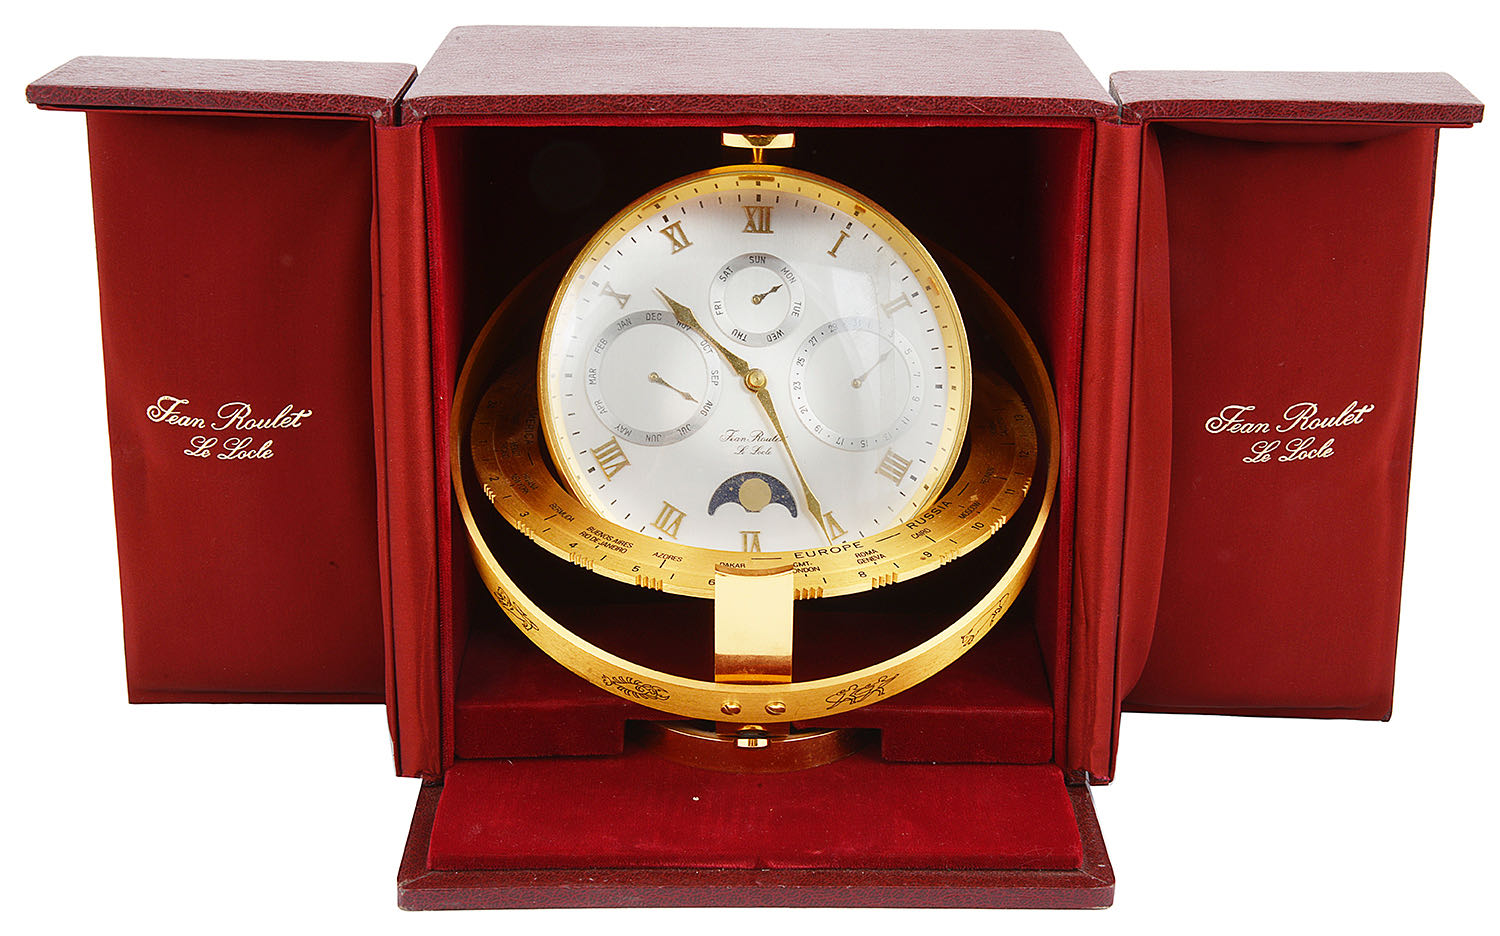 Lot 34 - A modern Jean Roulet Le Locle world time zone desk clock